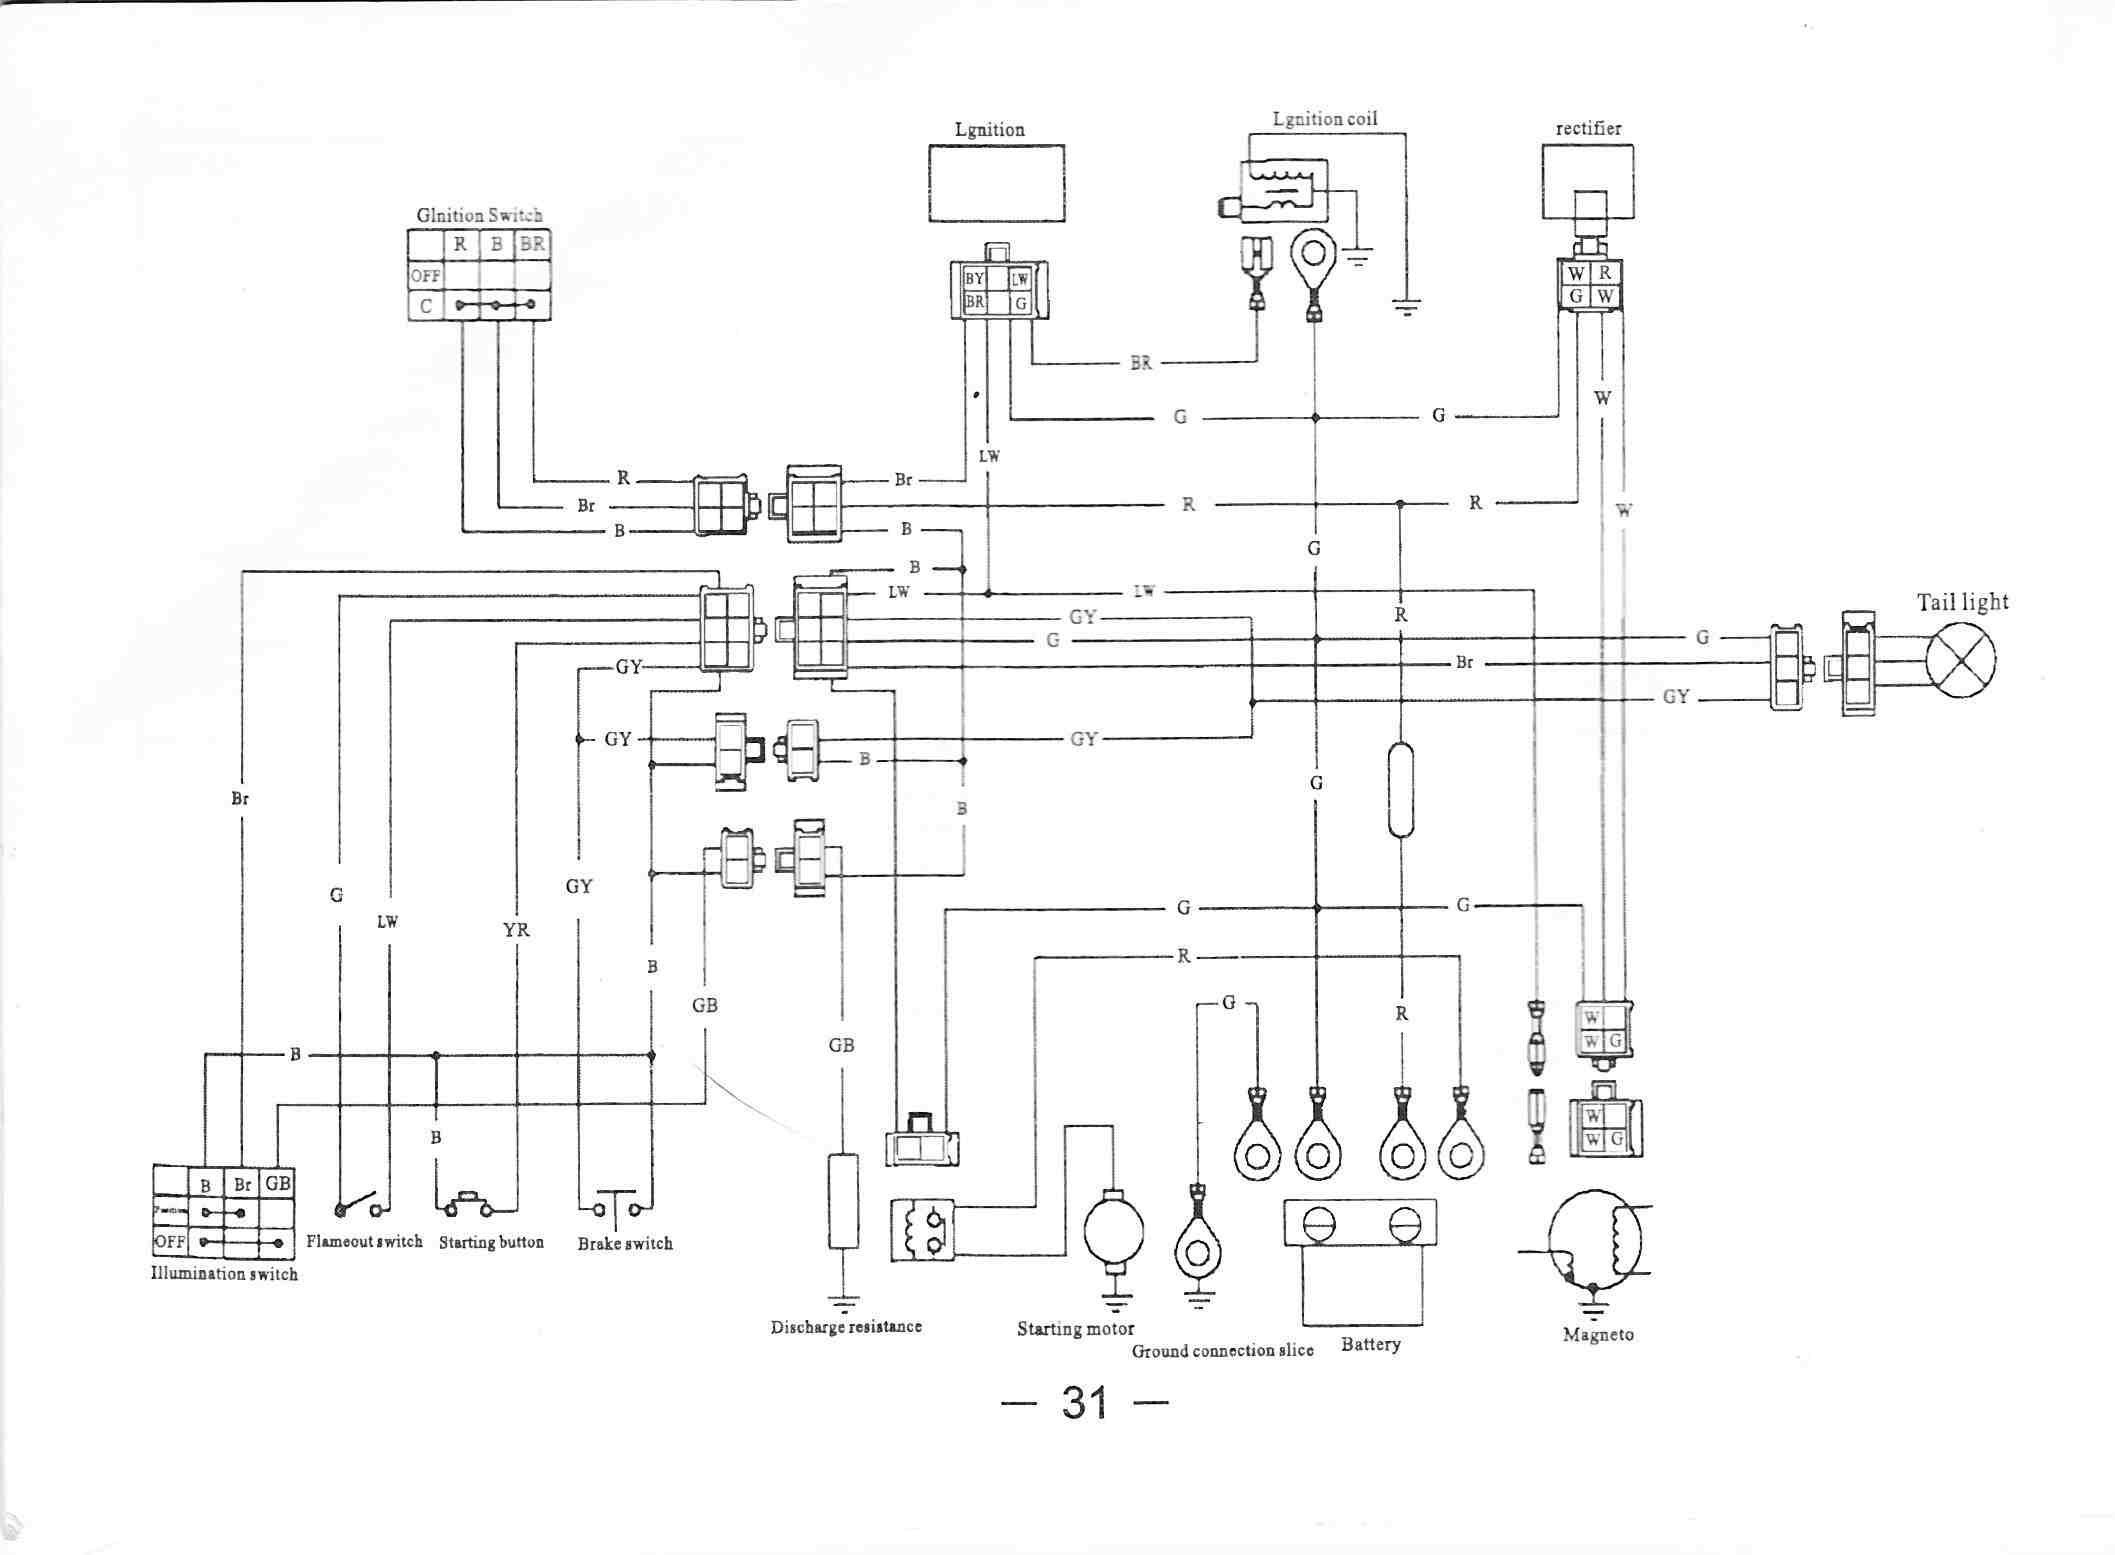 Lifan 110cc Engine Diagram Bmx 110 Wiring Diagram Wiring Diagram Used Of Lifan 110cc Engine Diagram